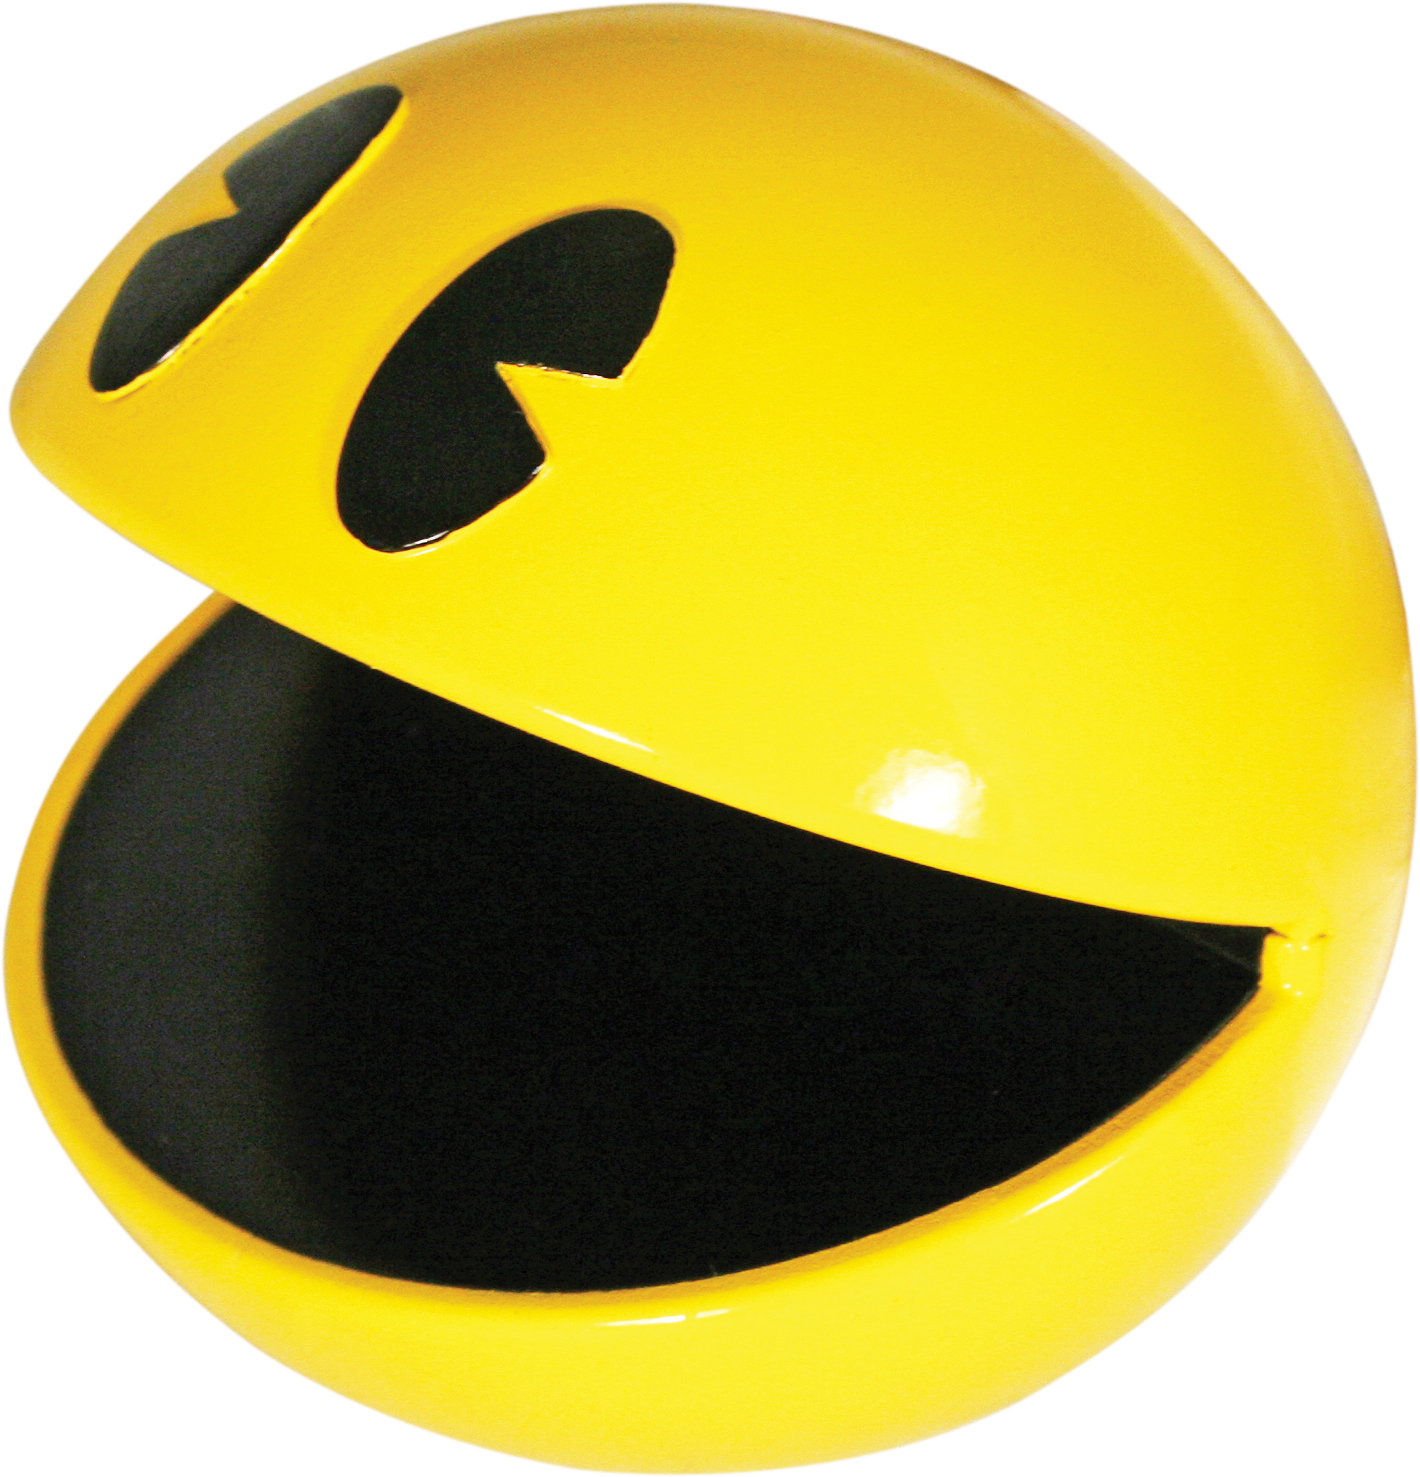 78+ images about pac man on Pinterest | Arcade games, Student and Art